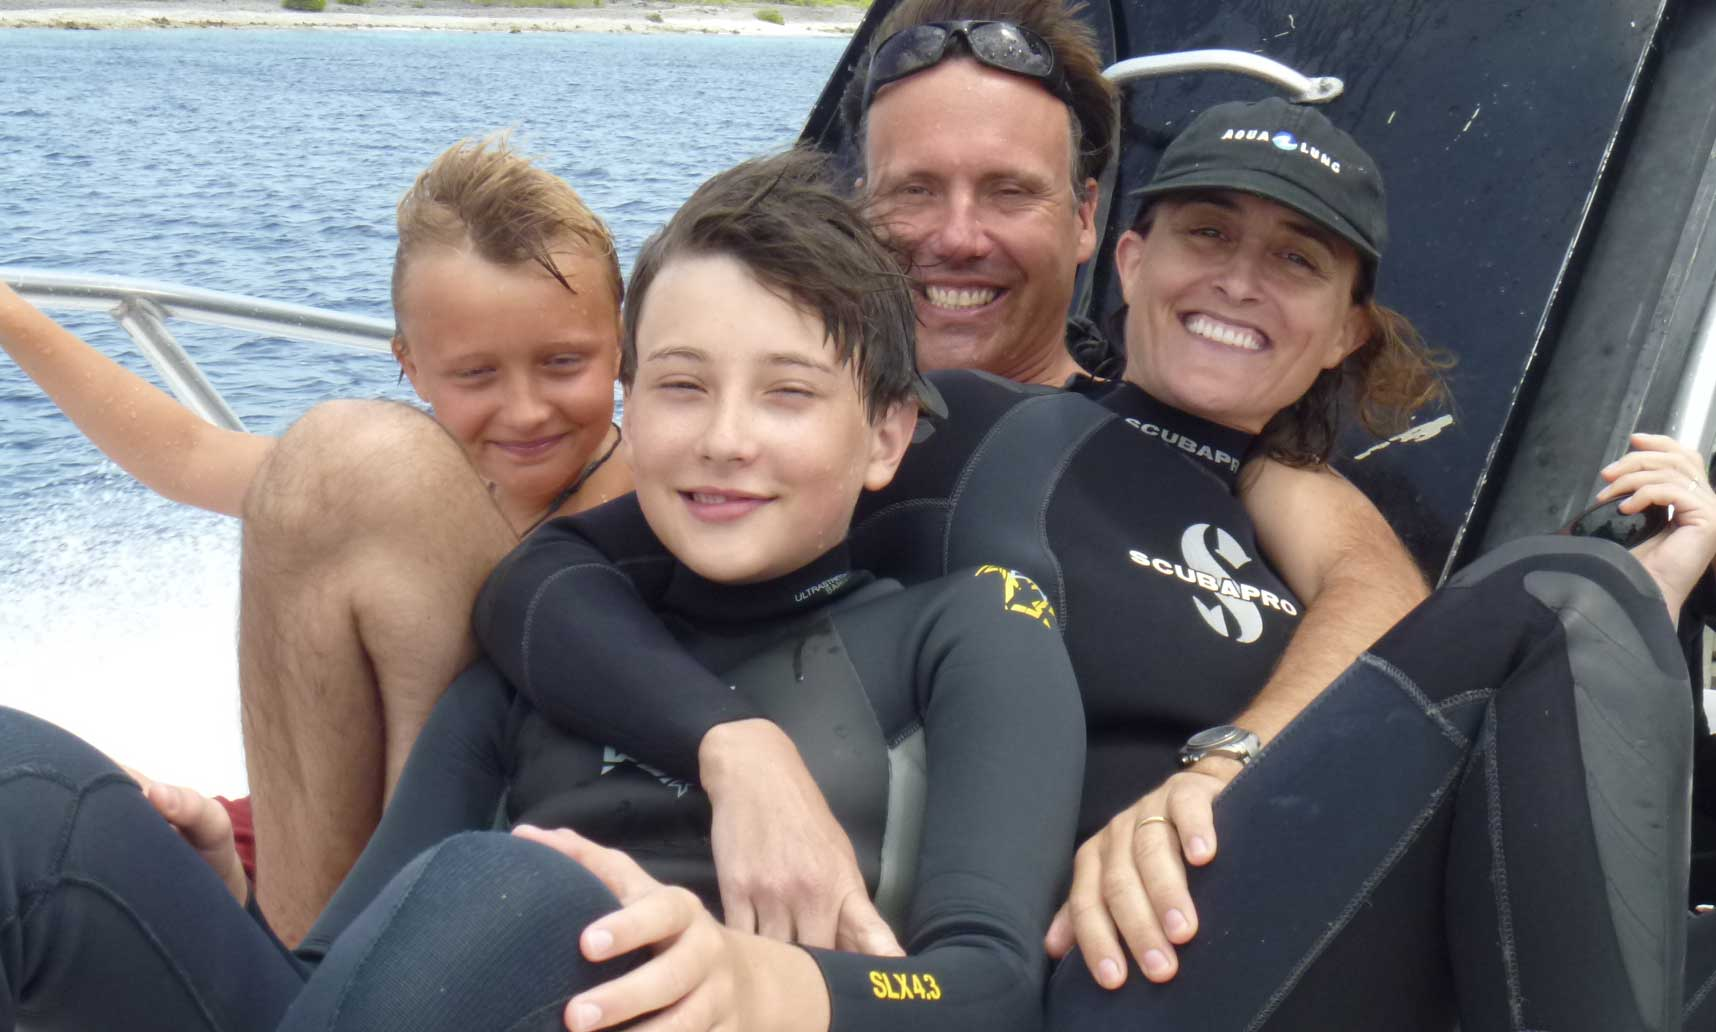 bonaire single parents Book single parent vacations with selloffvacationscom and avoid the single supplement enjoy single parent travel for less.